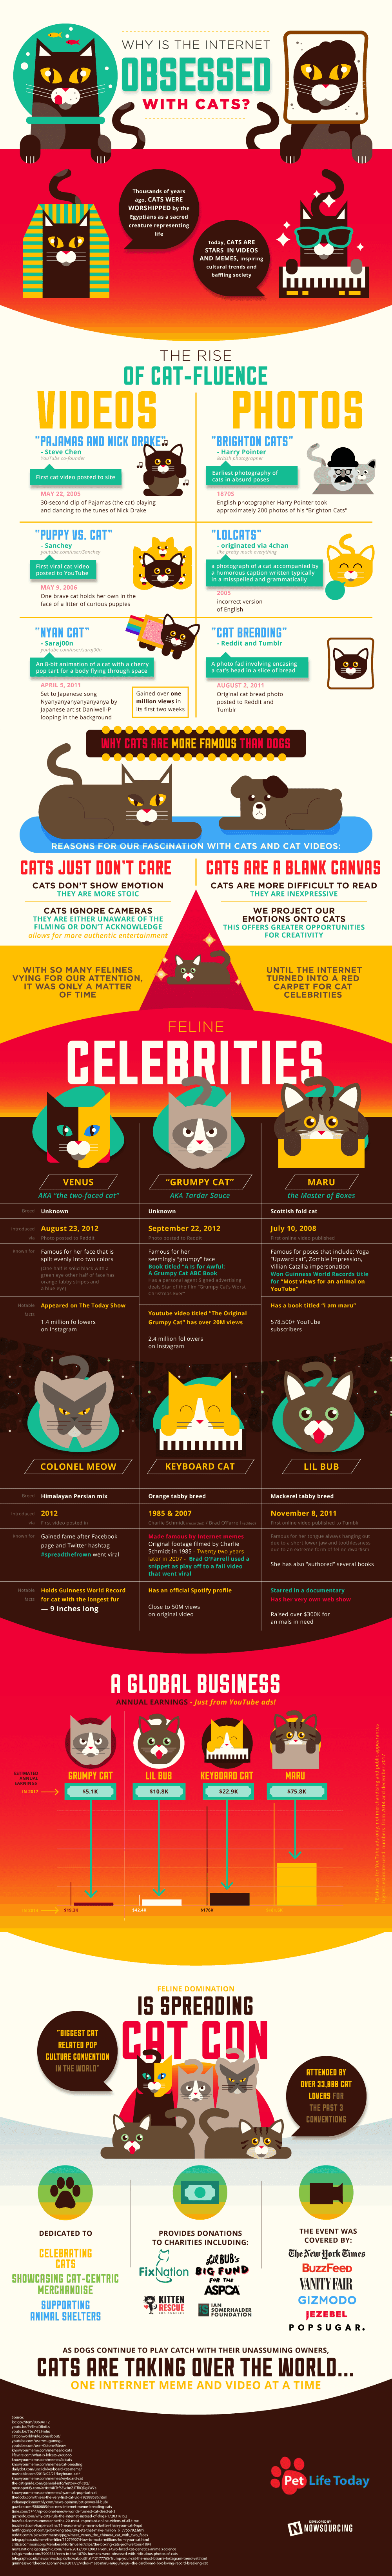 Why Is The Internet Obsessed With Cats? #infographic